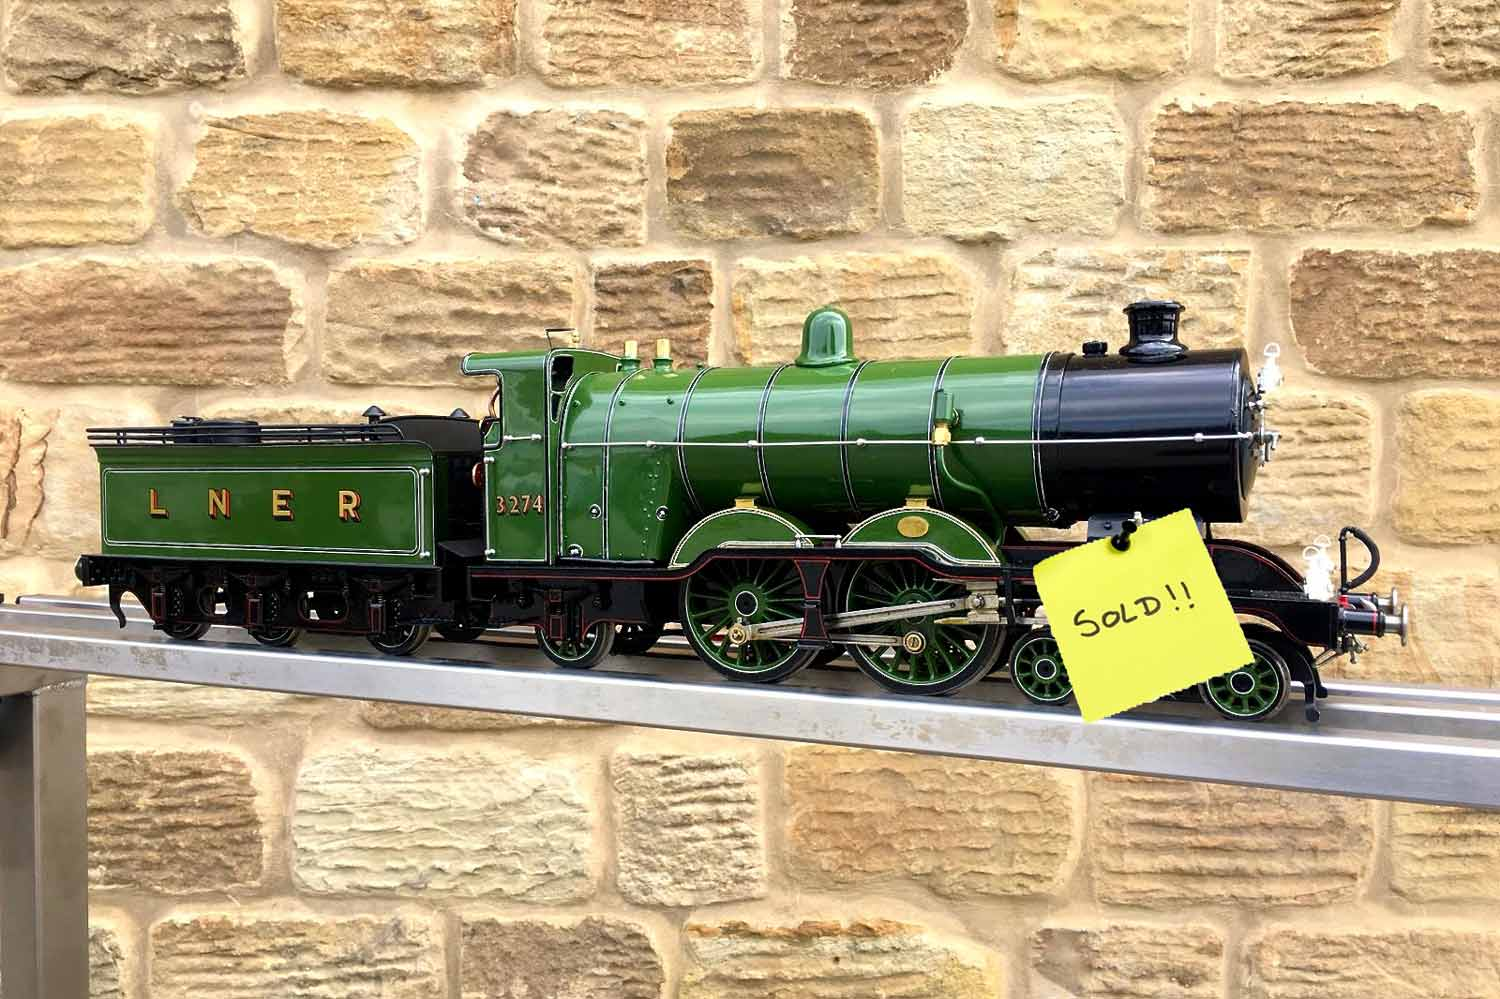 test SOLD-2-and-a-half-inch-gauge-3-GNR-C1-Atlantic-Ayesha-live-steam-locomotive-for-sale-15